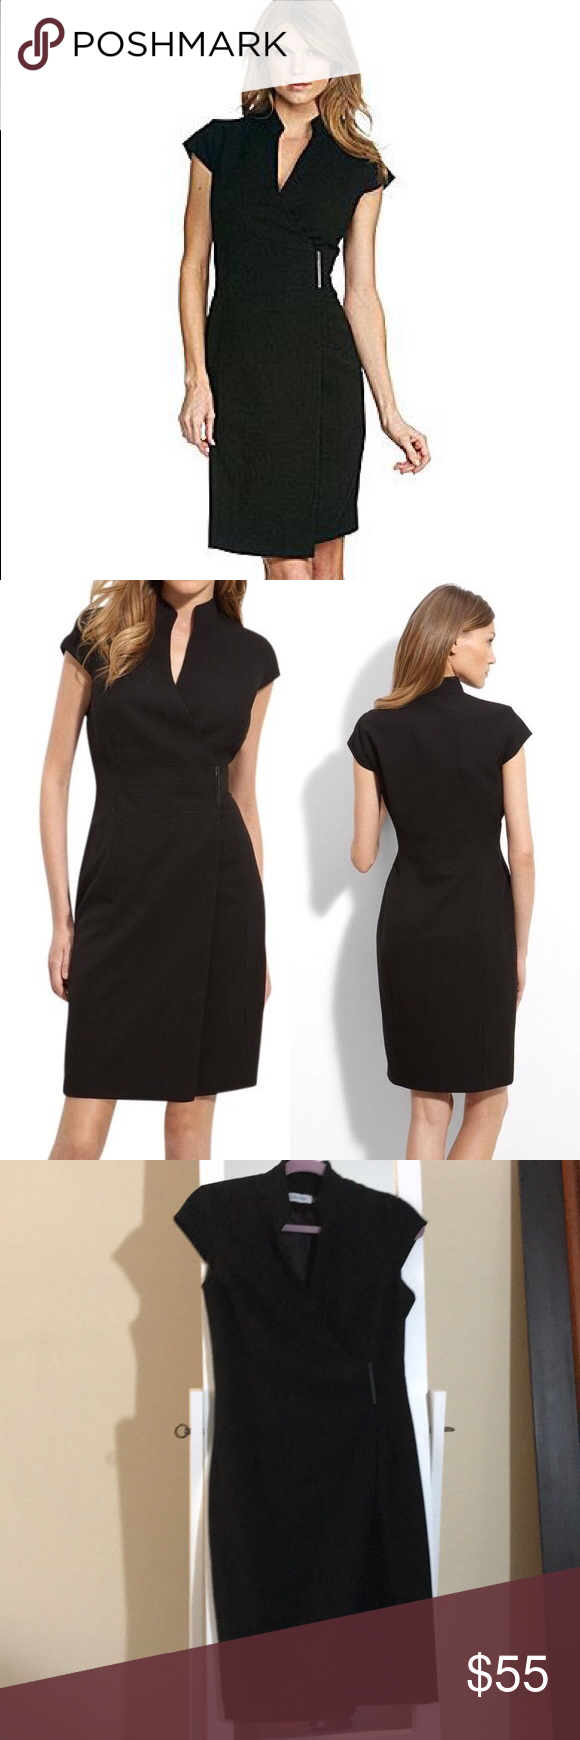 ff2a79508 Calvin Klein Wrap Cap sleeve Crepe Pencil Dress Calvin Klein Wrap Cap  sleeve Crepe Pencil Dress